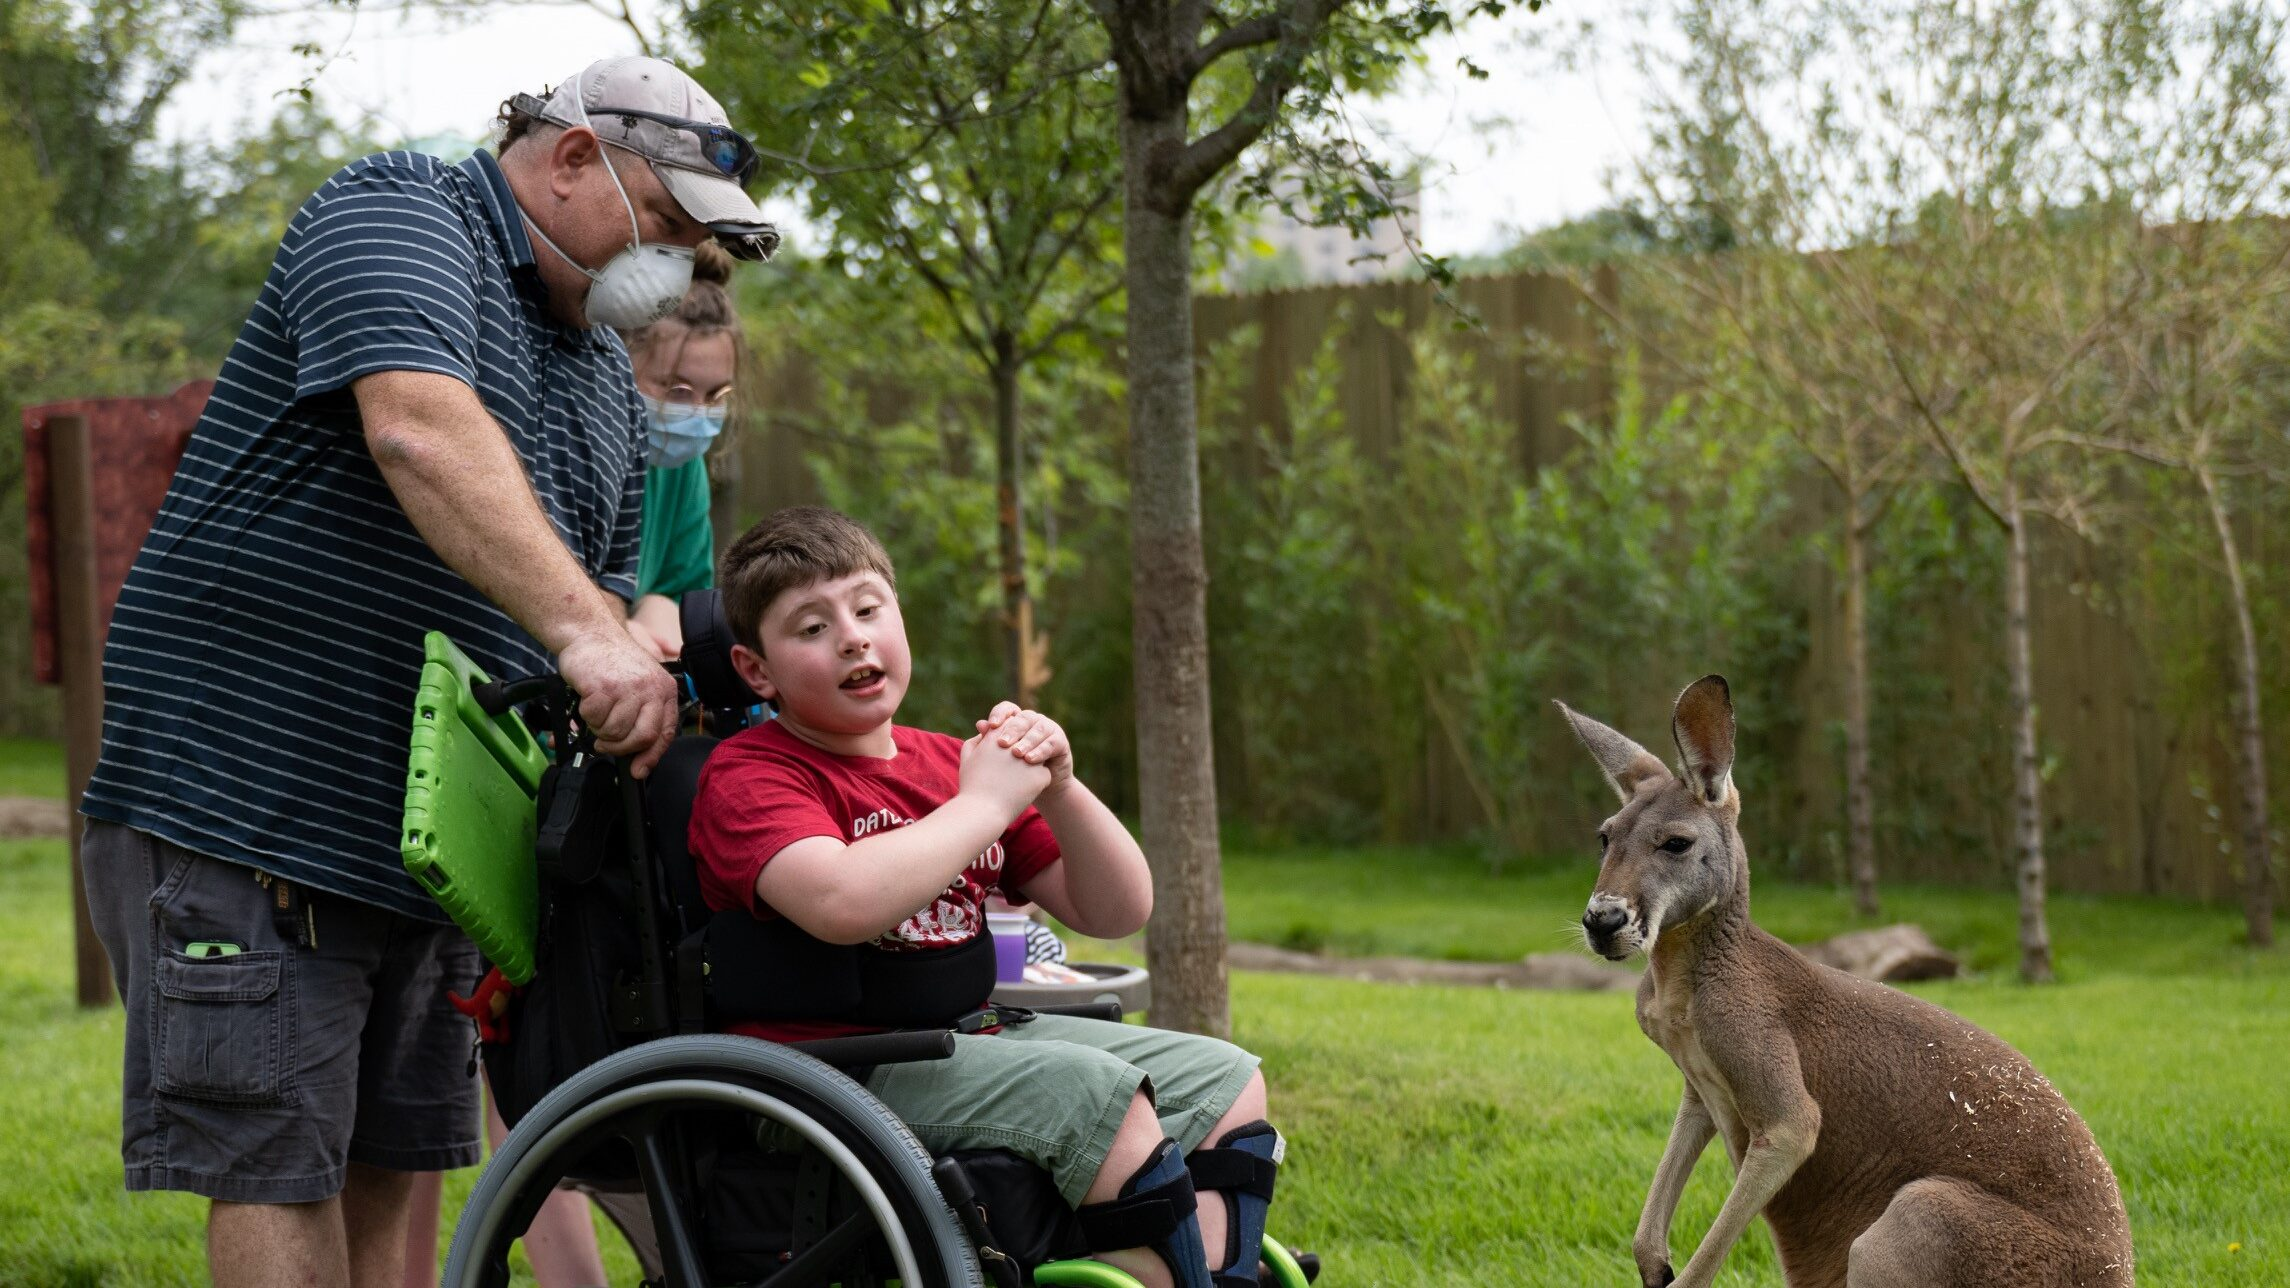 Parents pushing a child in a wheelchair, looking at a kangaroo in a zoo